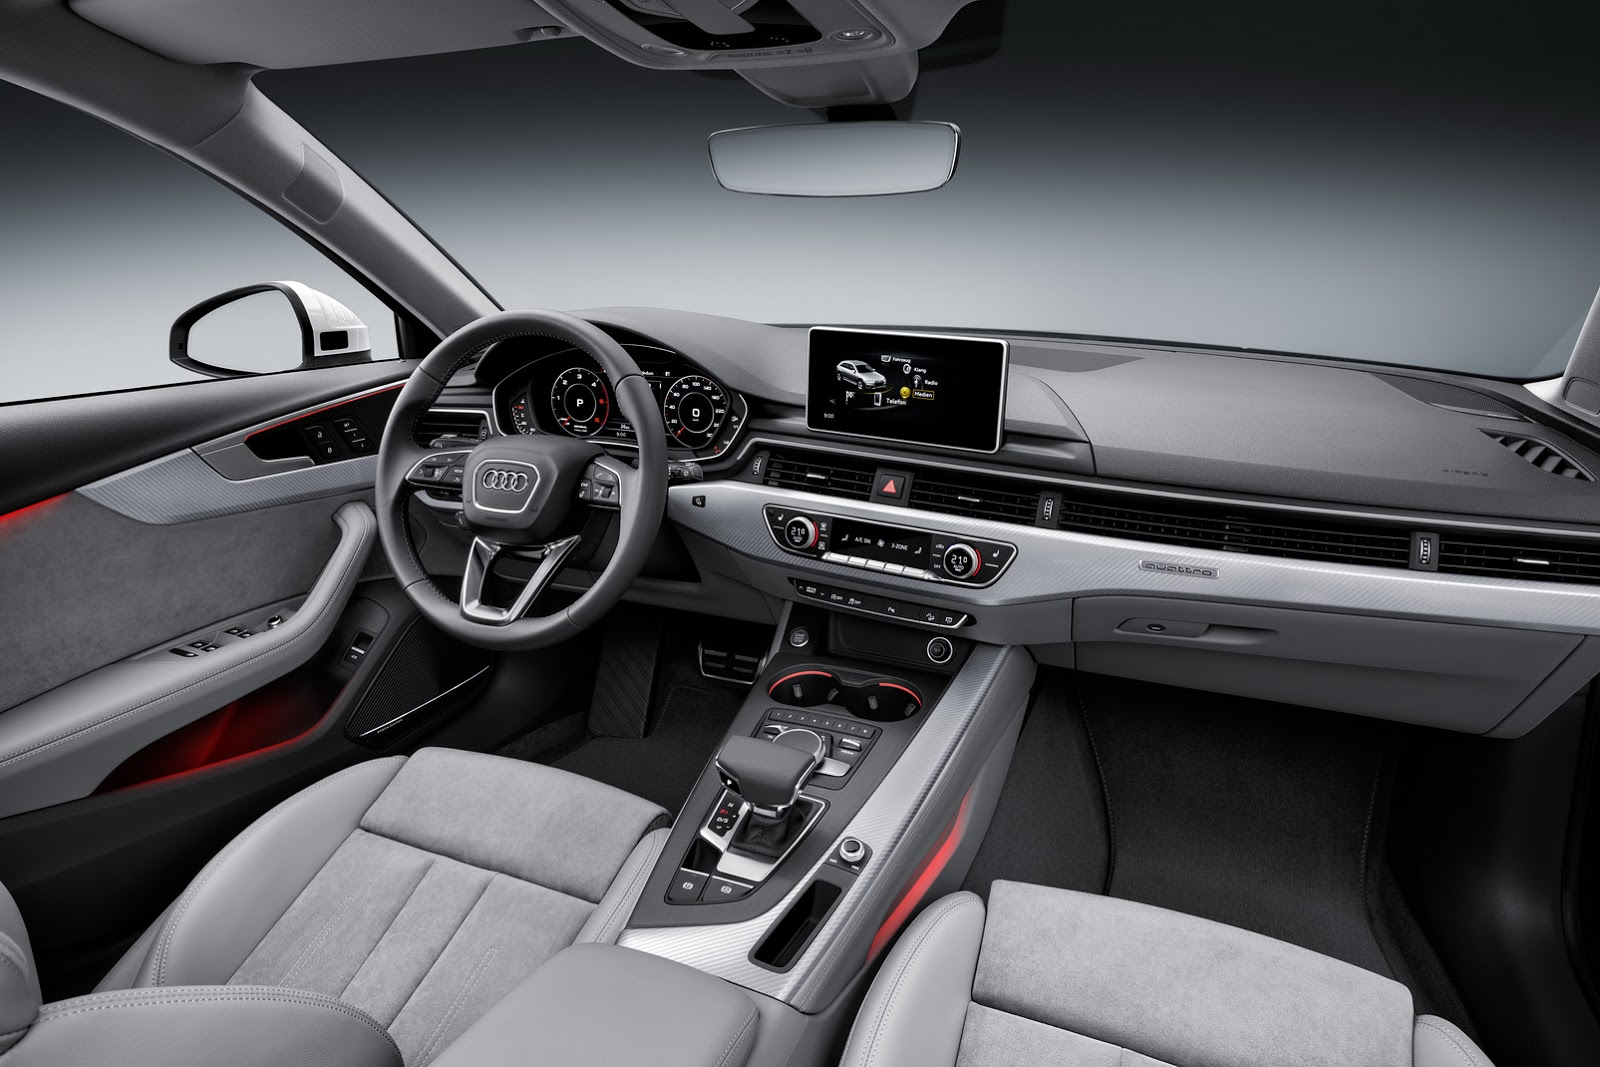 Audi a4 s line station wagon 2015 interior